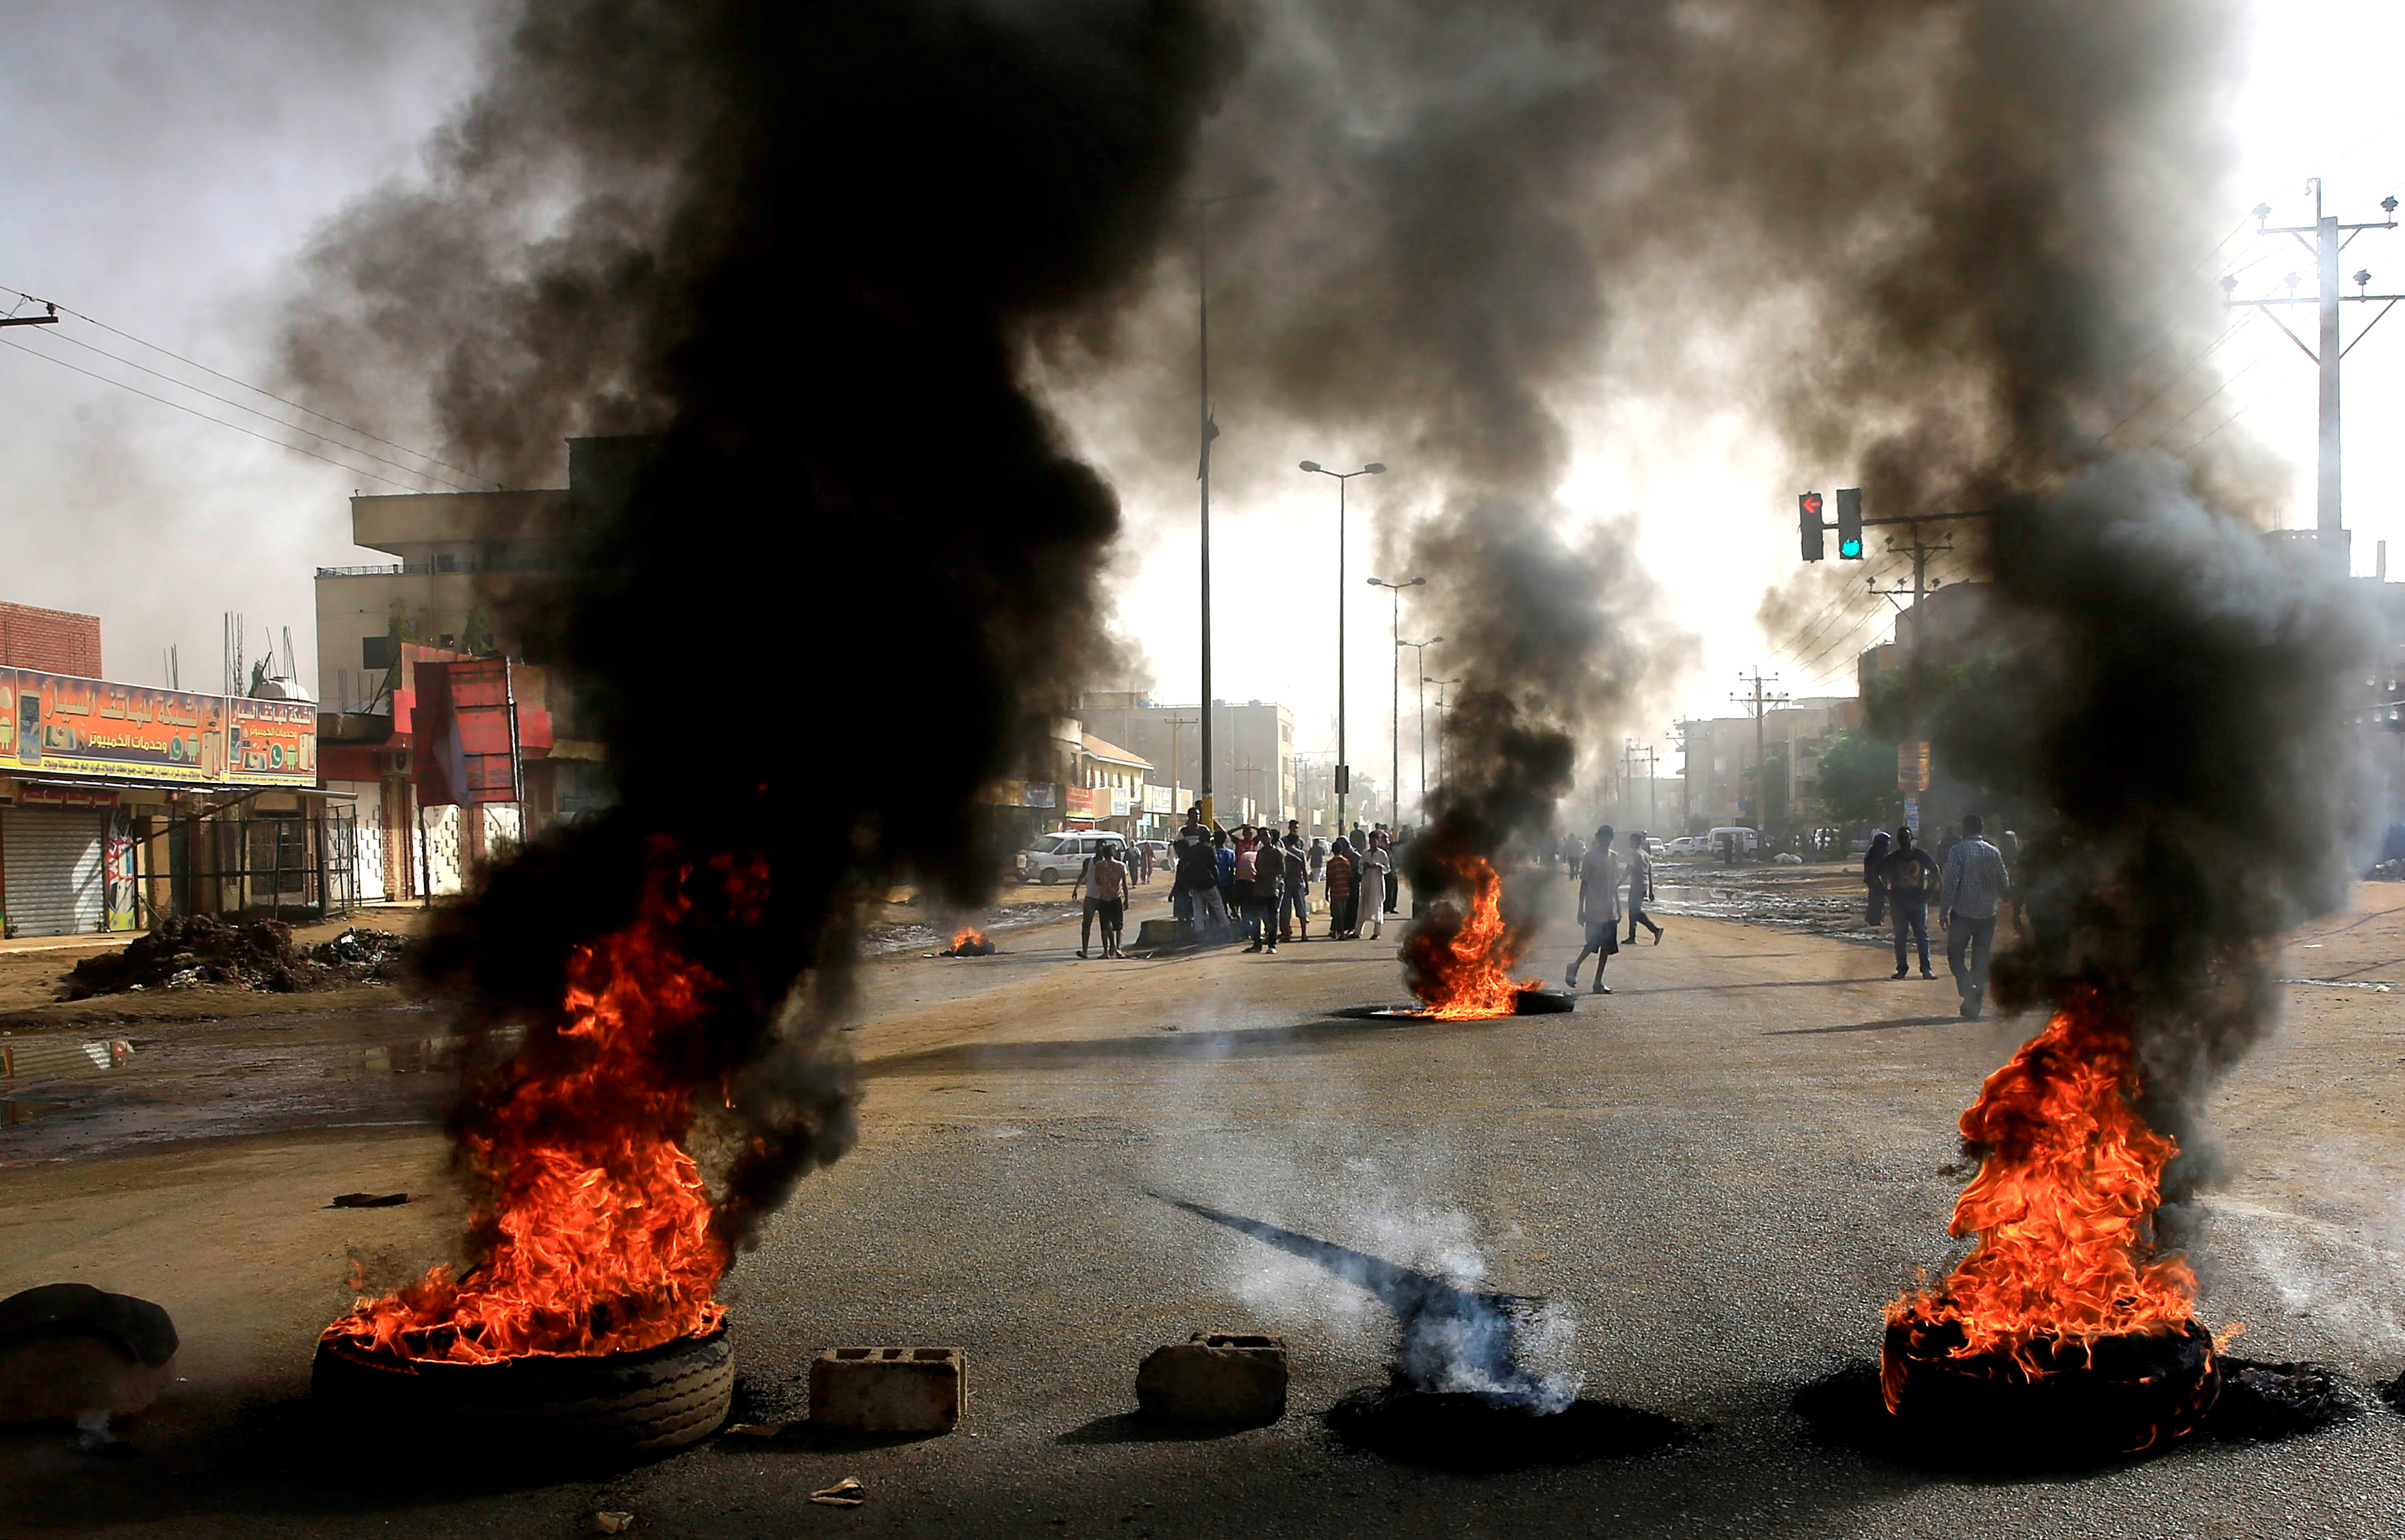 Sudanese protesters use burning tires to erect a barricade on a street, demanding that the country's Transitional Military Council hand over power to civilians, in Khartoum, Sudan, June 3, 2019.